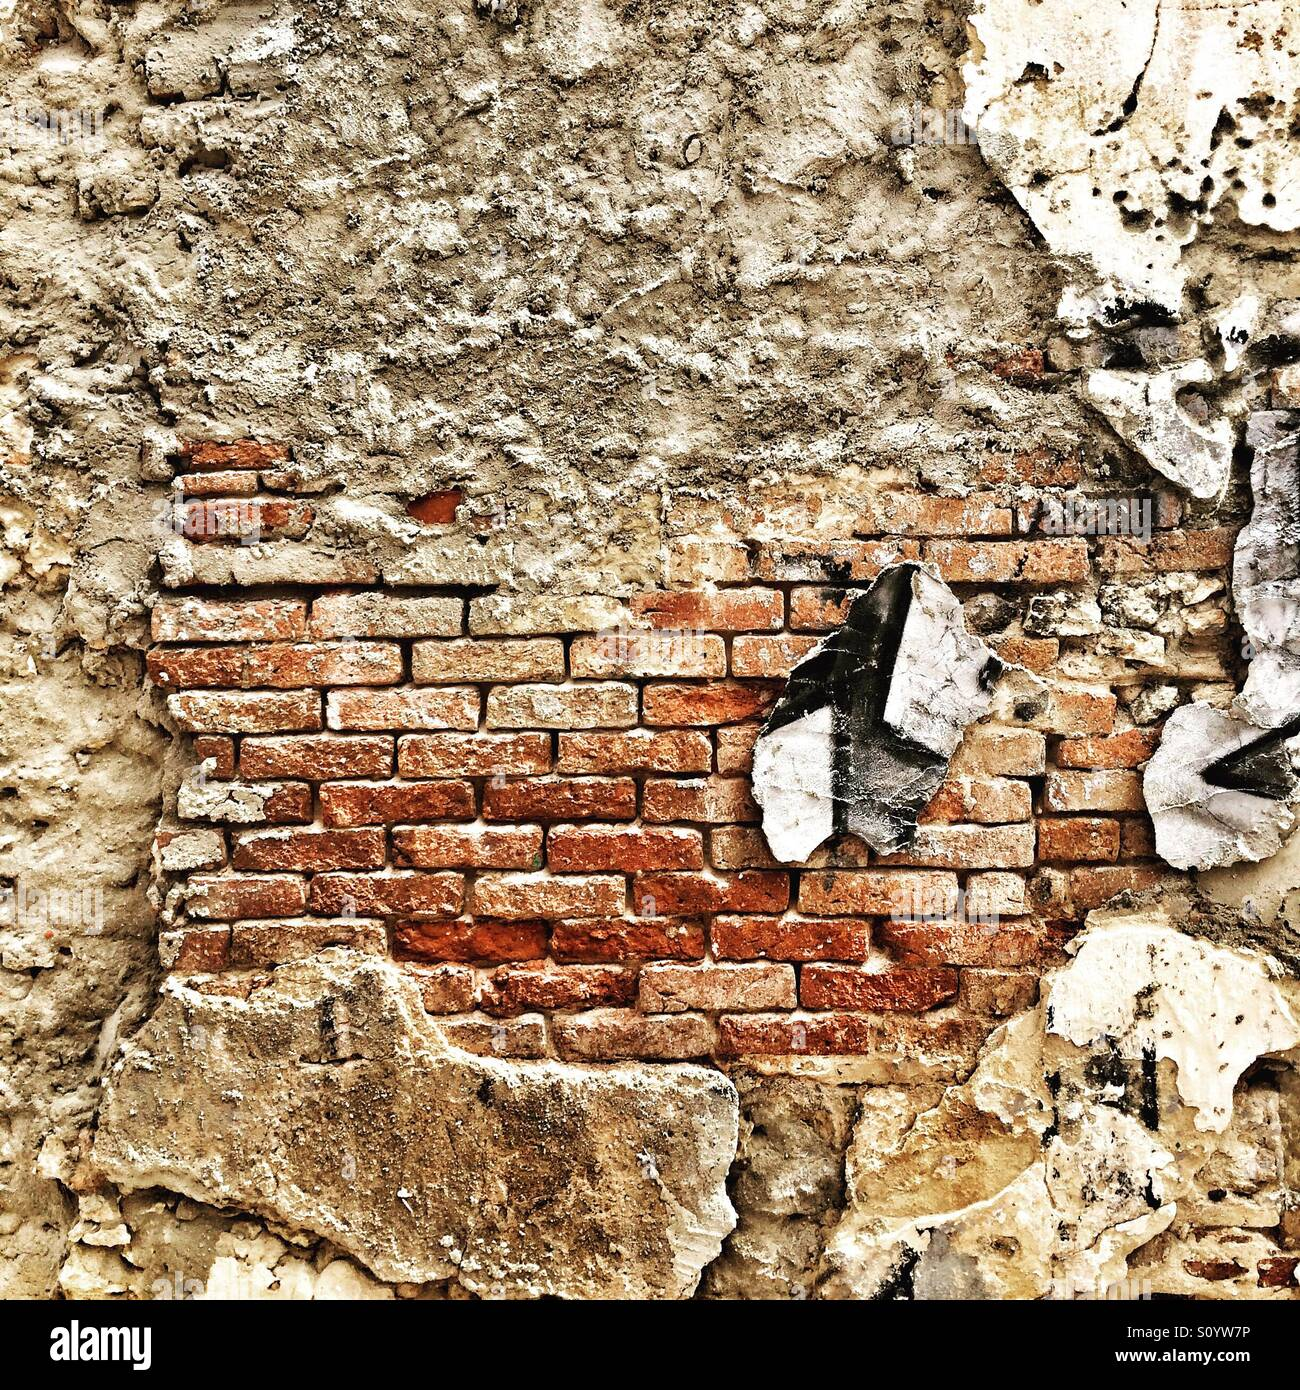 Pulling down the wall - Stock Image